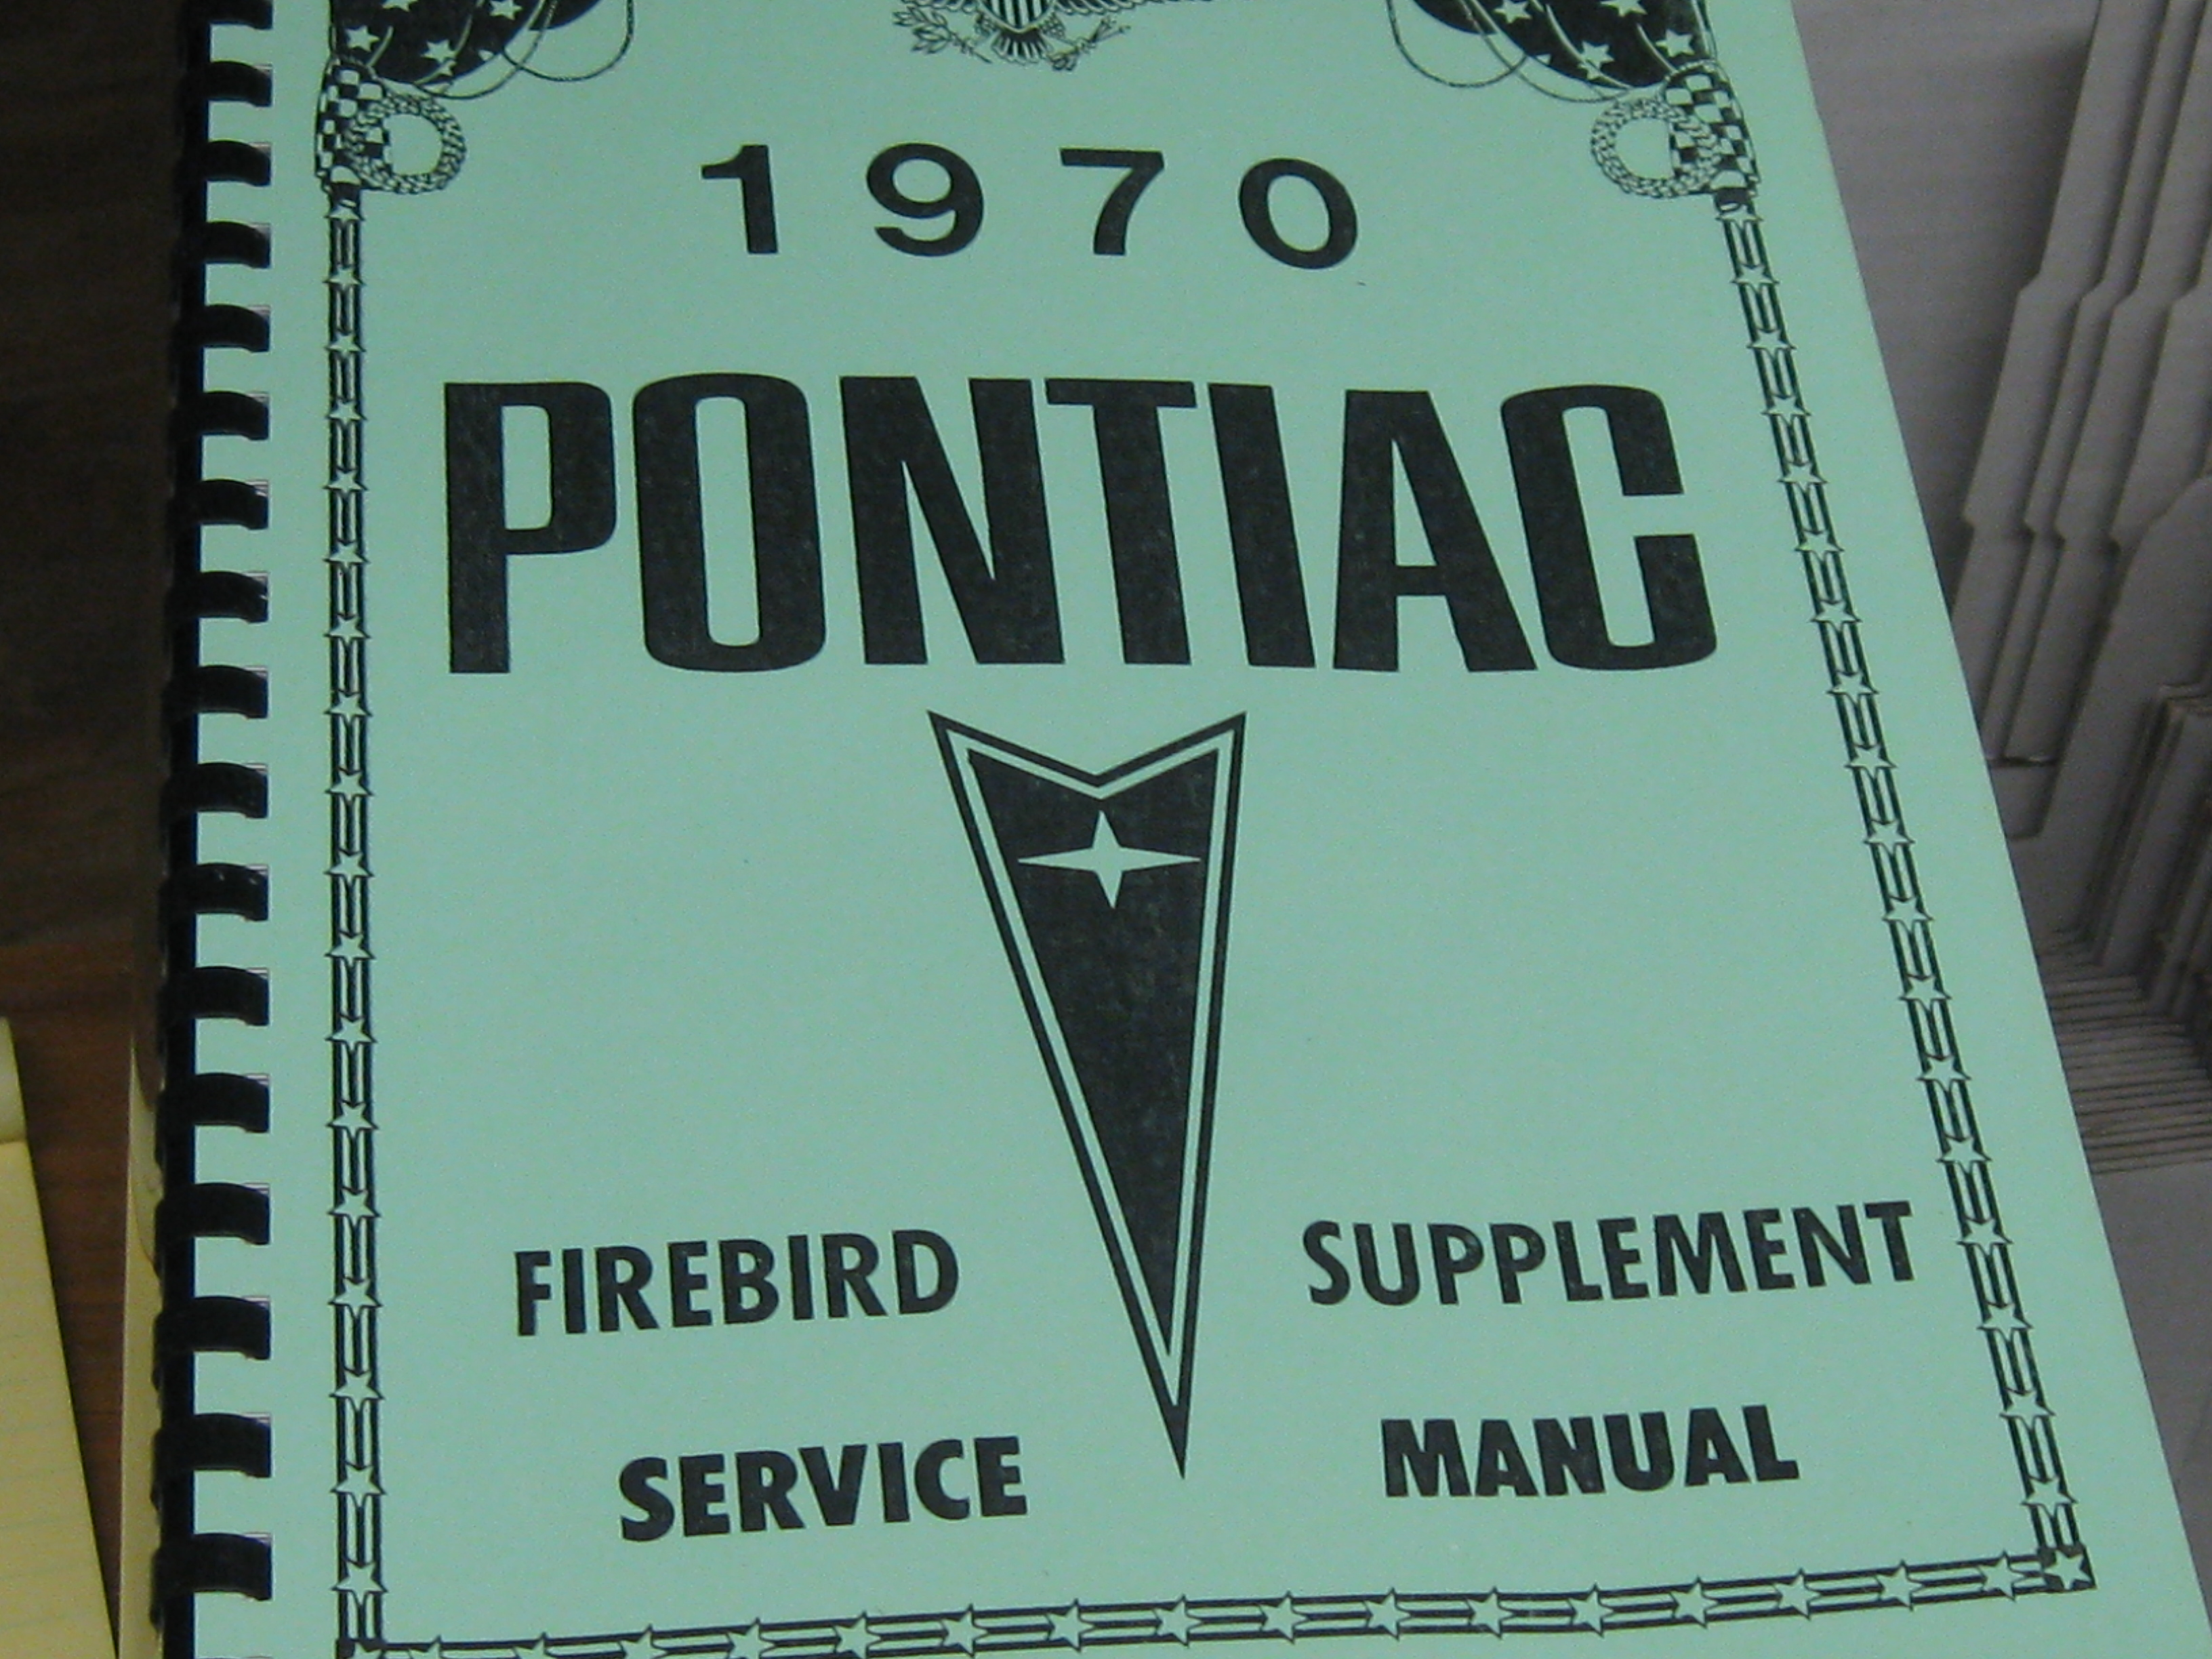 $20.00 Tax may apply. 10 in stock. Quantity. Add to cart. SKU: 1970 Pontiac  Firebird Service Manual supplement